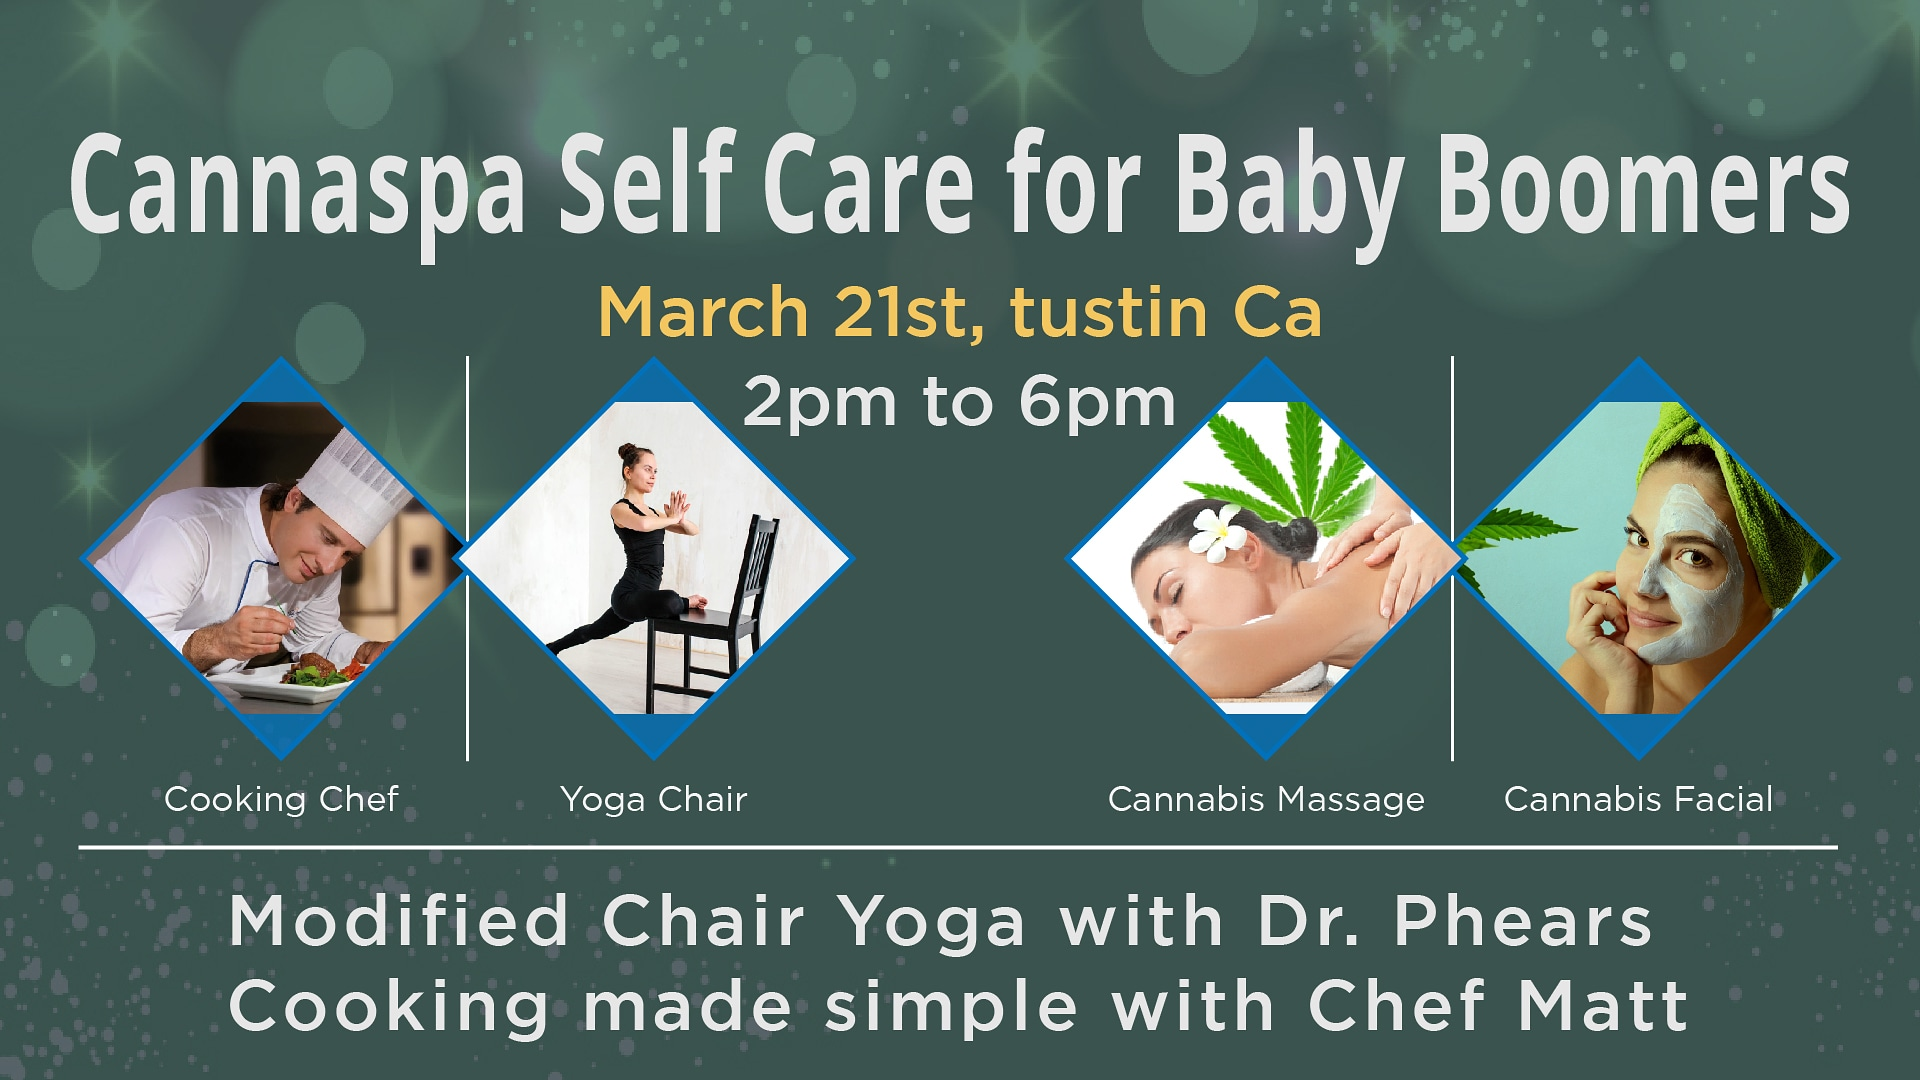 Cannaspa Self Care for Baby Boomers